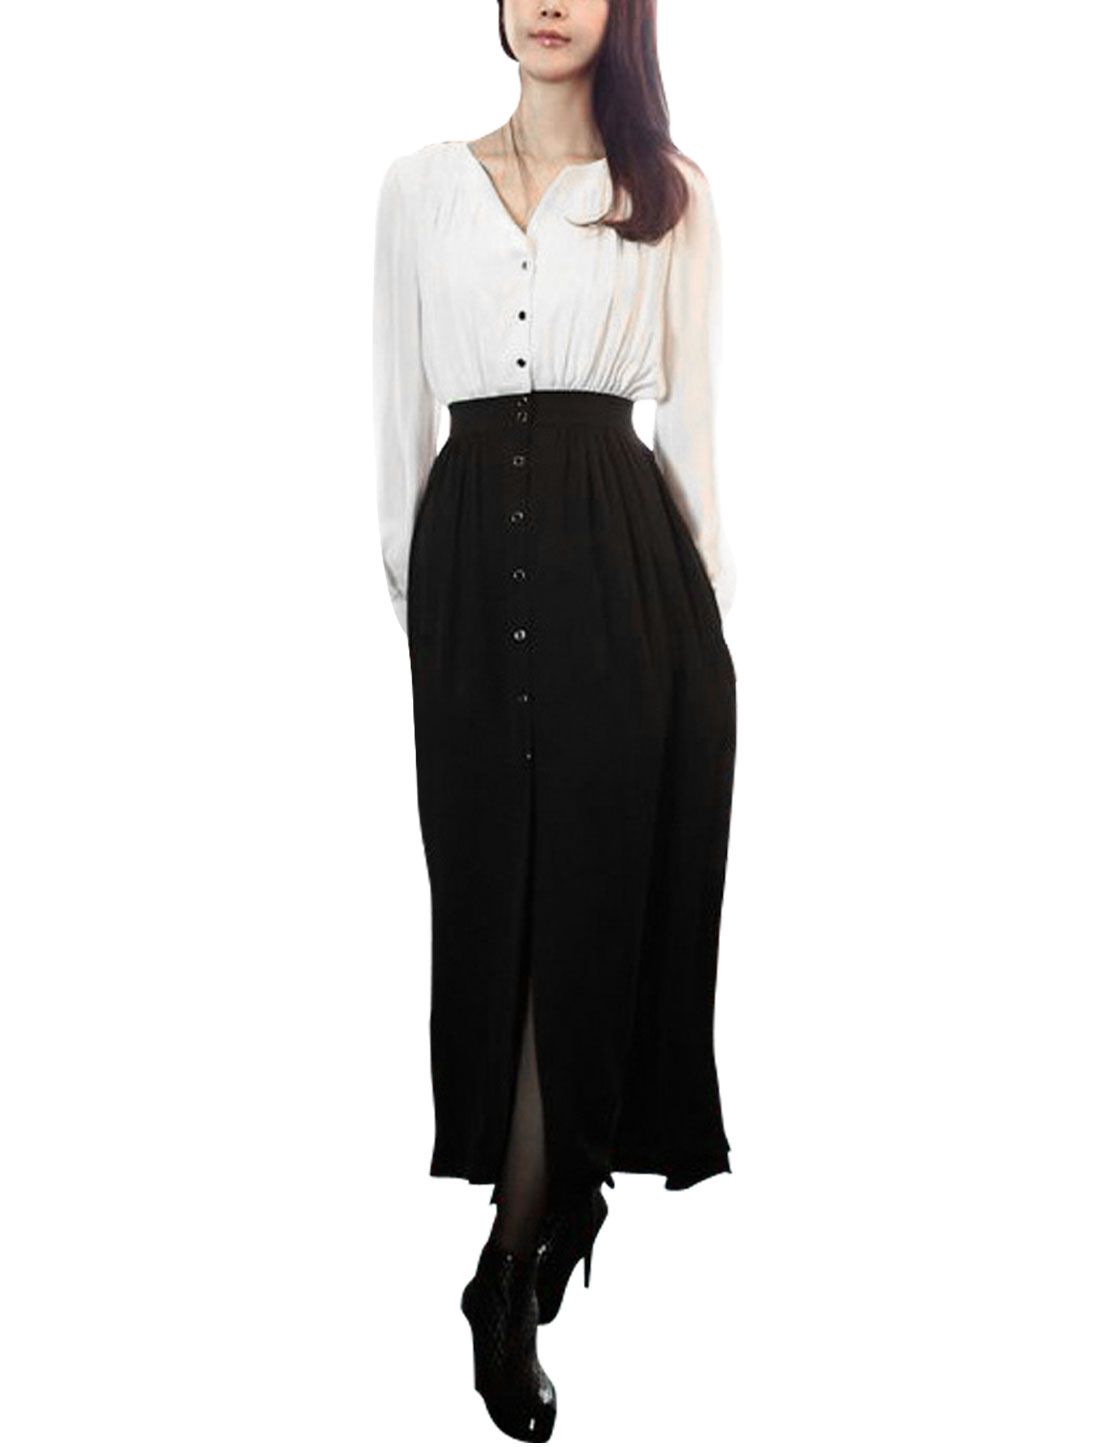 Ladies Stand Collar Button Up Long Sleeve Color Block Dress White Black S